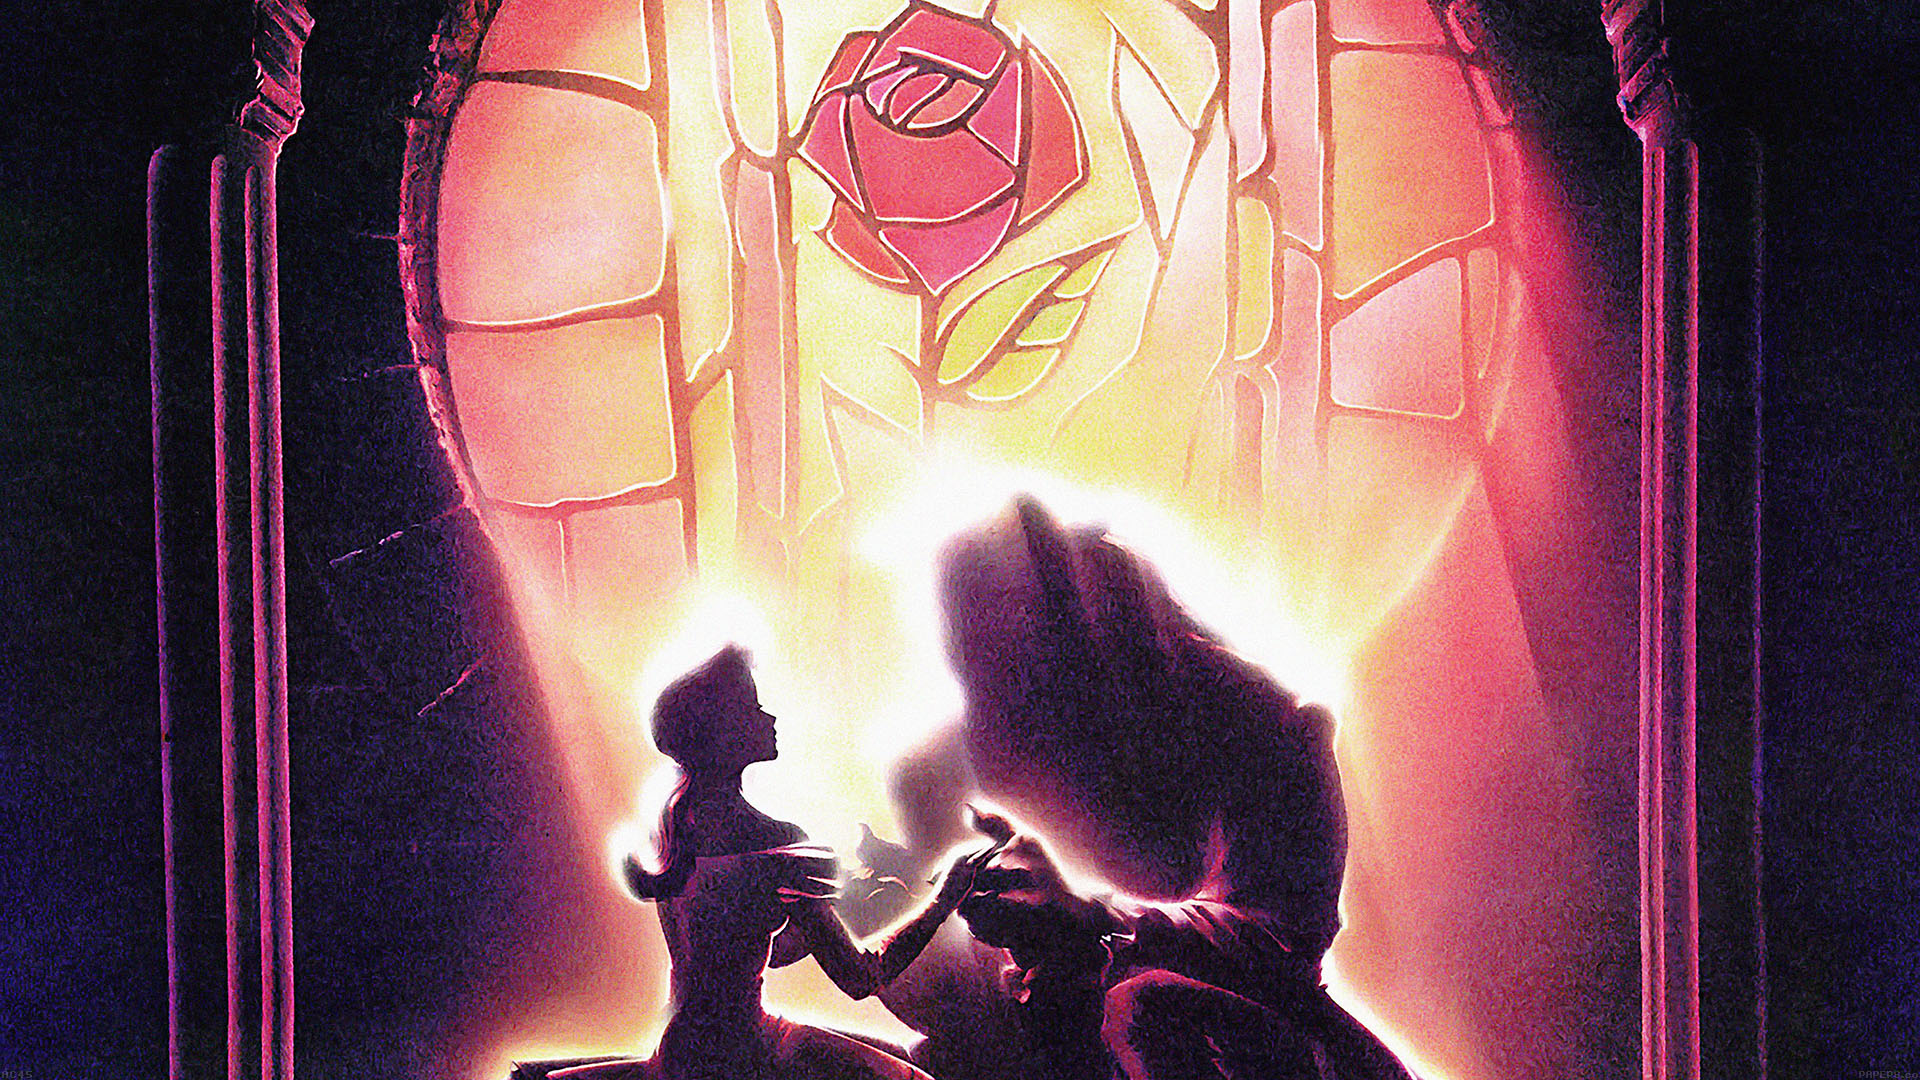 Ac45 Wallpaper Beauty And The Beast Disney Art Illust Papers Co